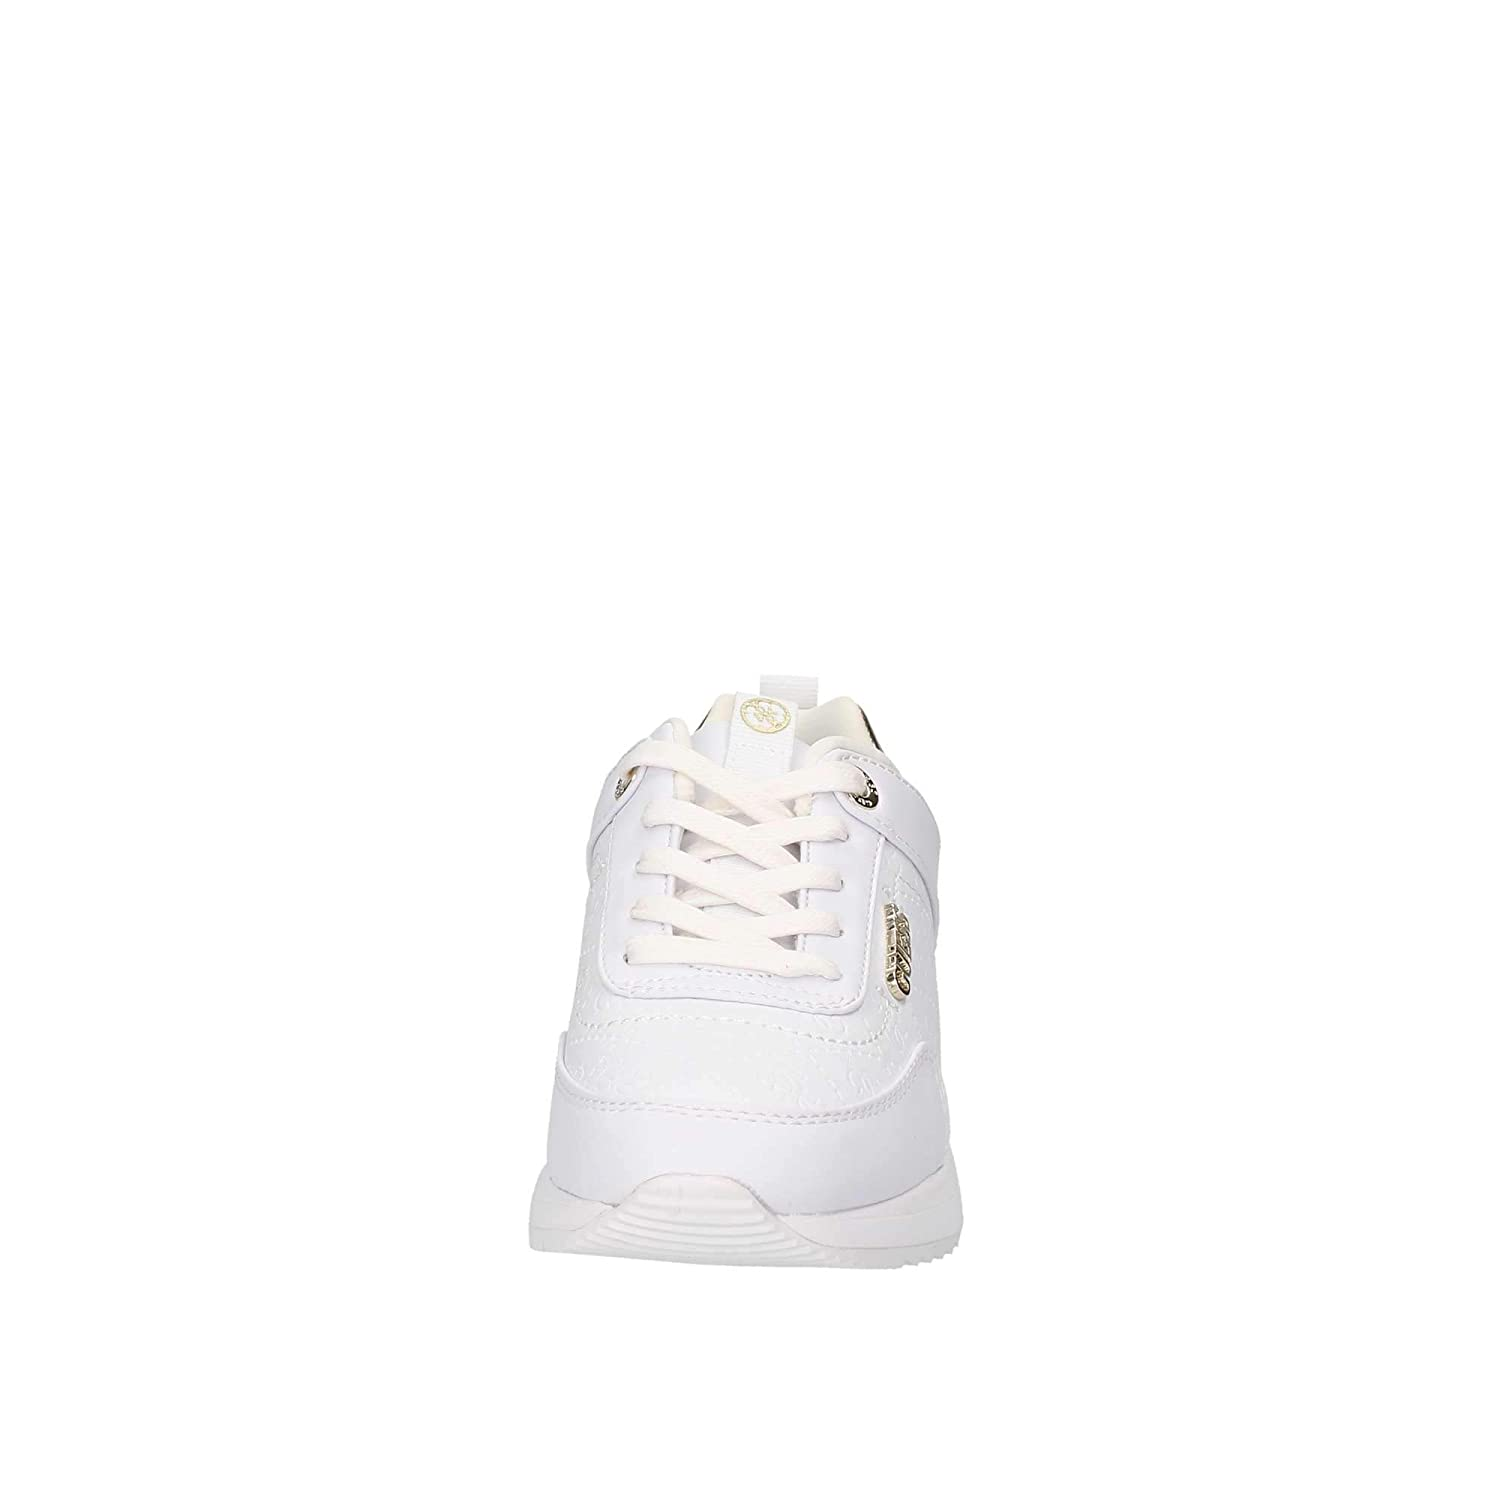 Fal12Baskets Fl5mrl White Blanches Pour GuessMarlyn Femmes nyN0w8Ovm